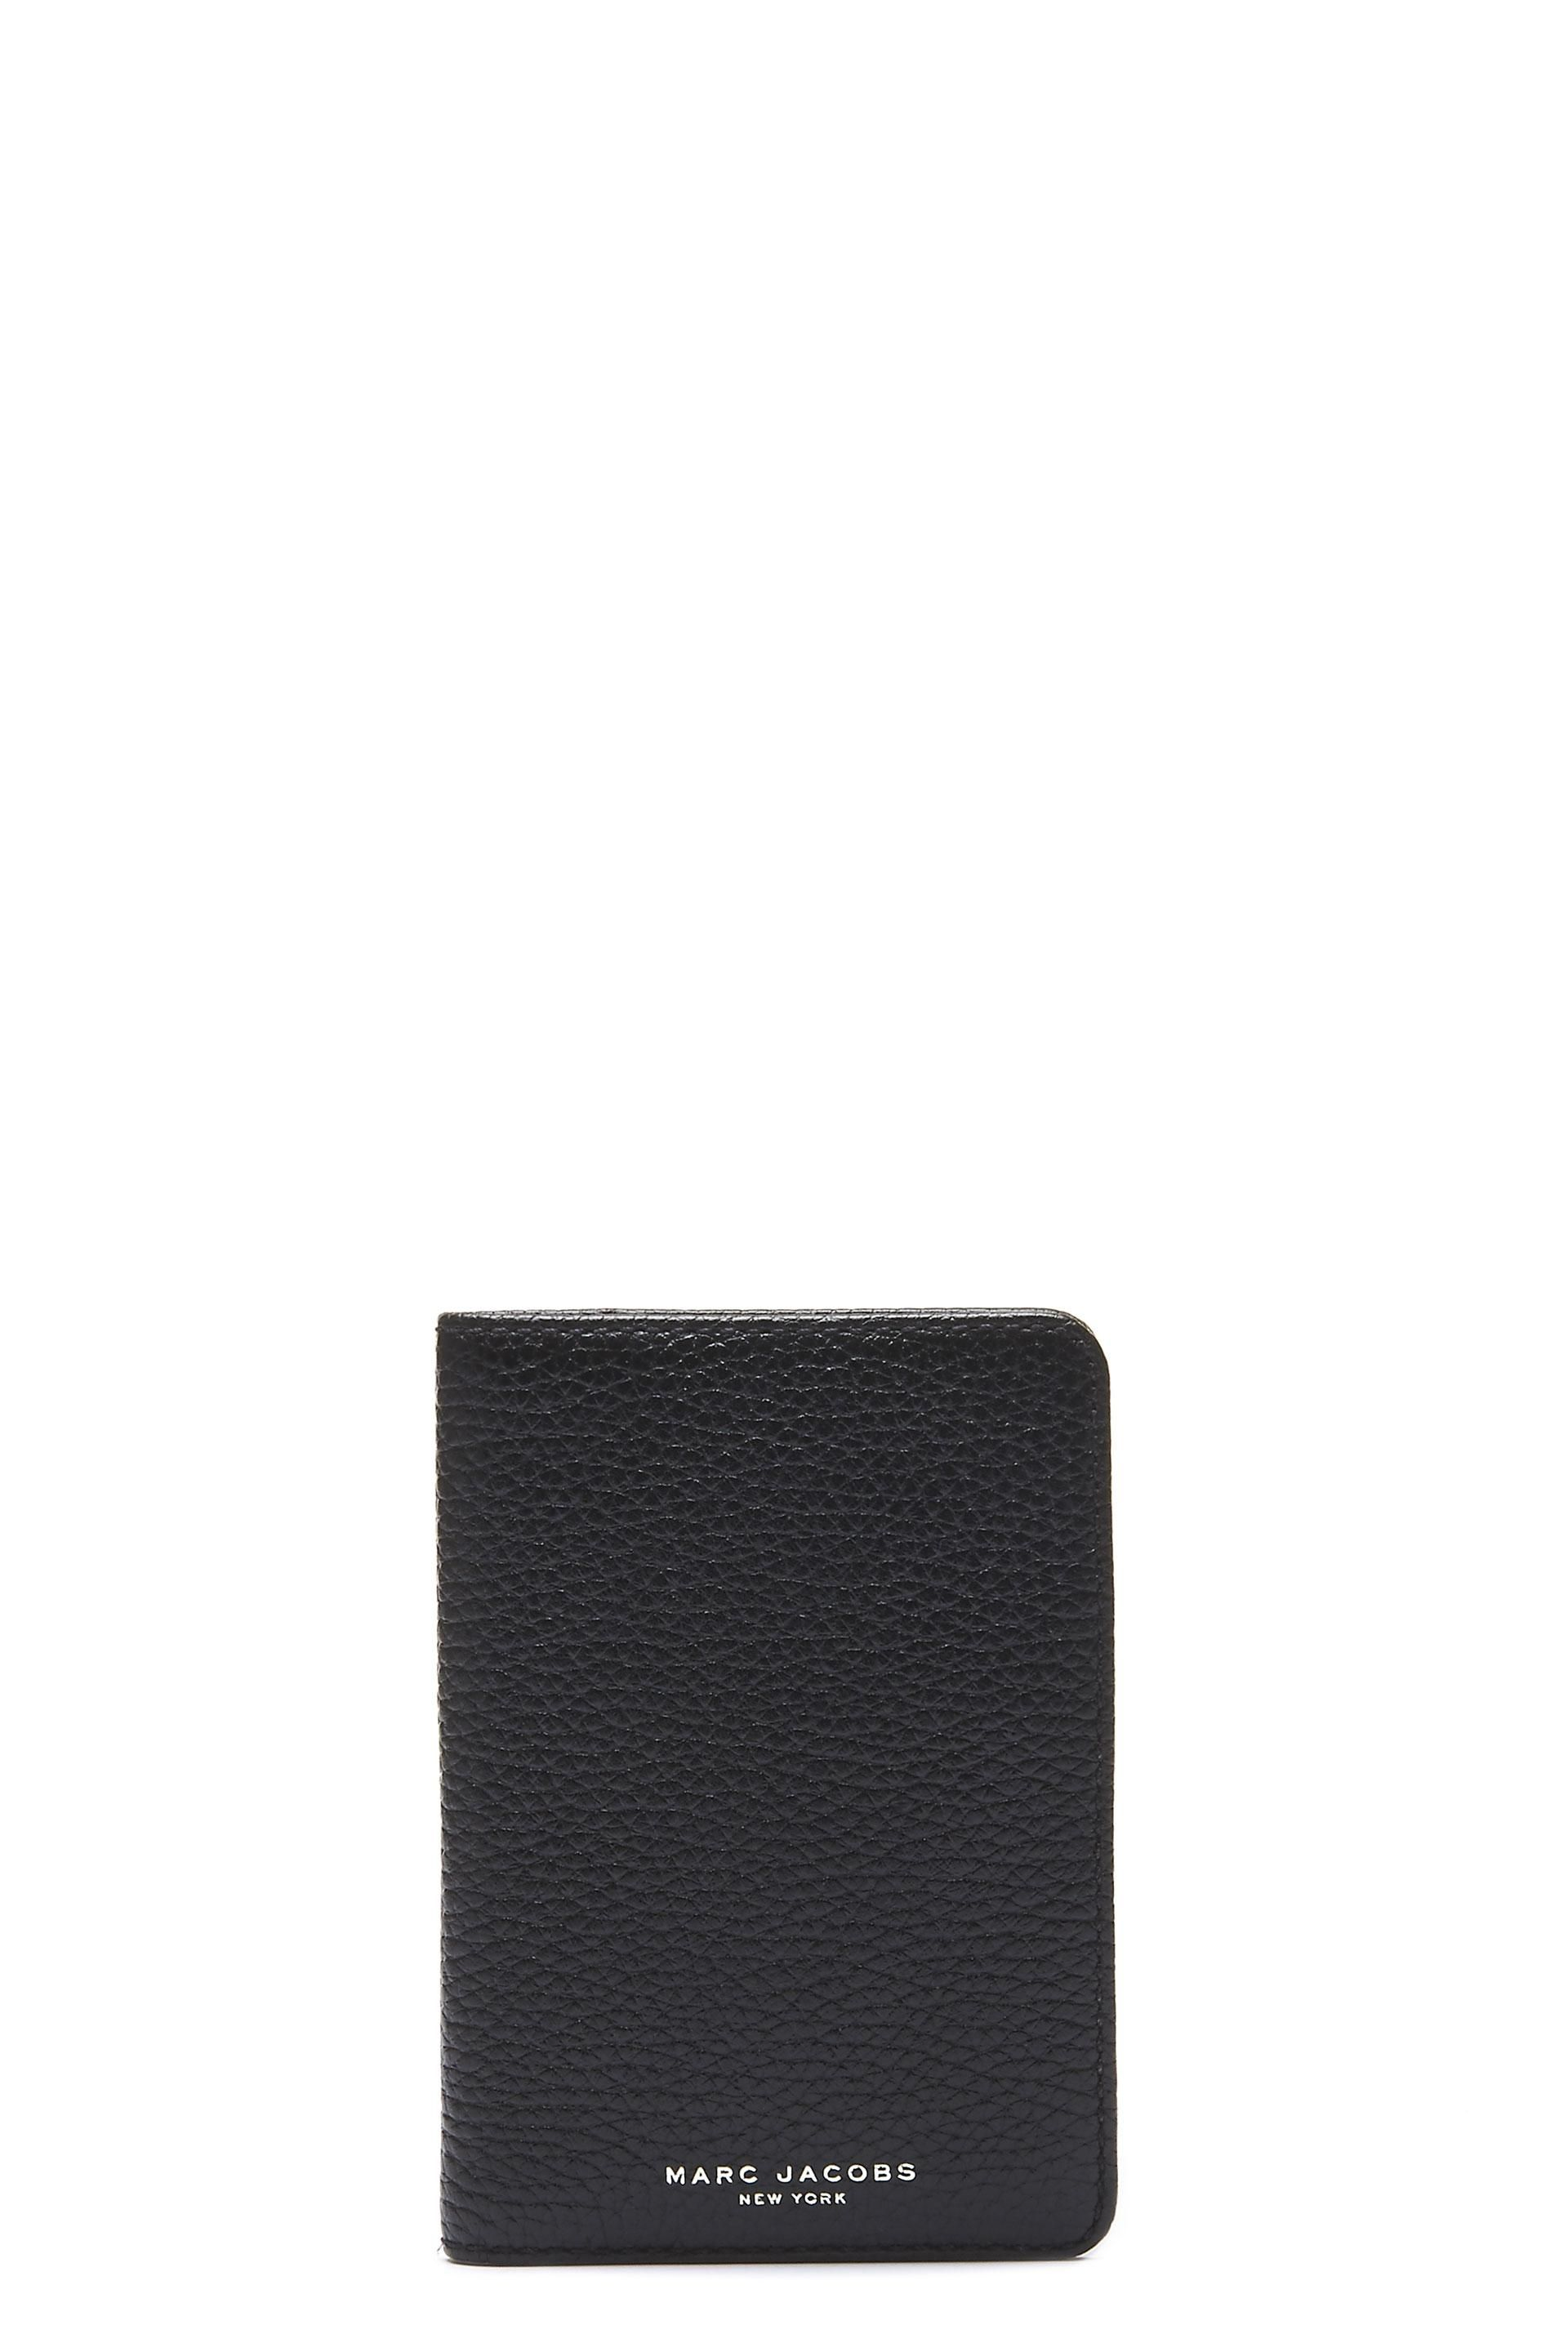 b1f371535684 MARC JACOBS Gotham Leather Passport Cover.  marcjacobs  bags  leather